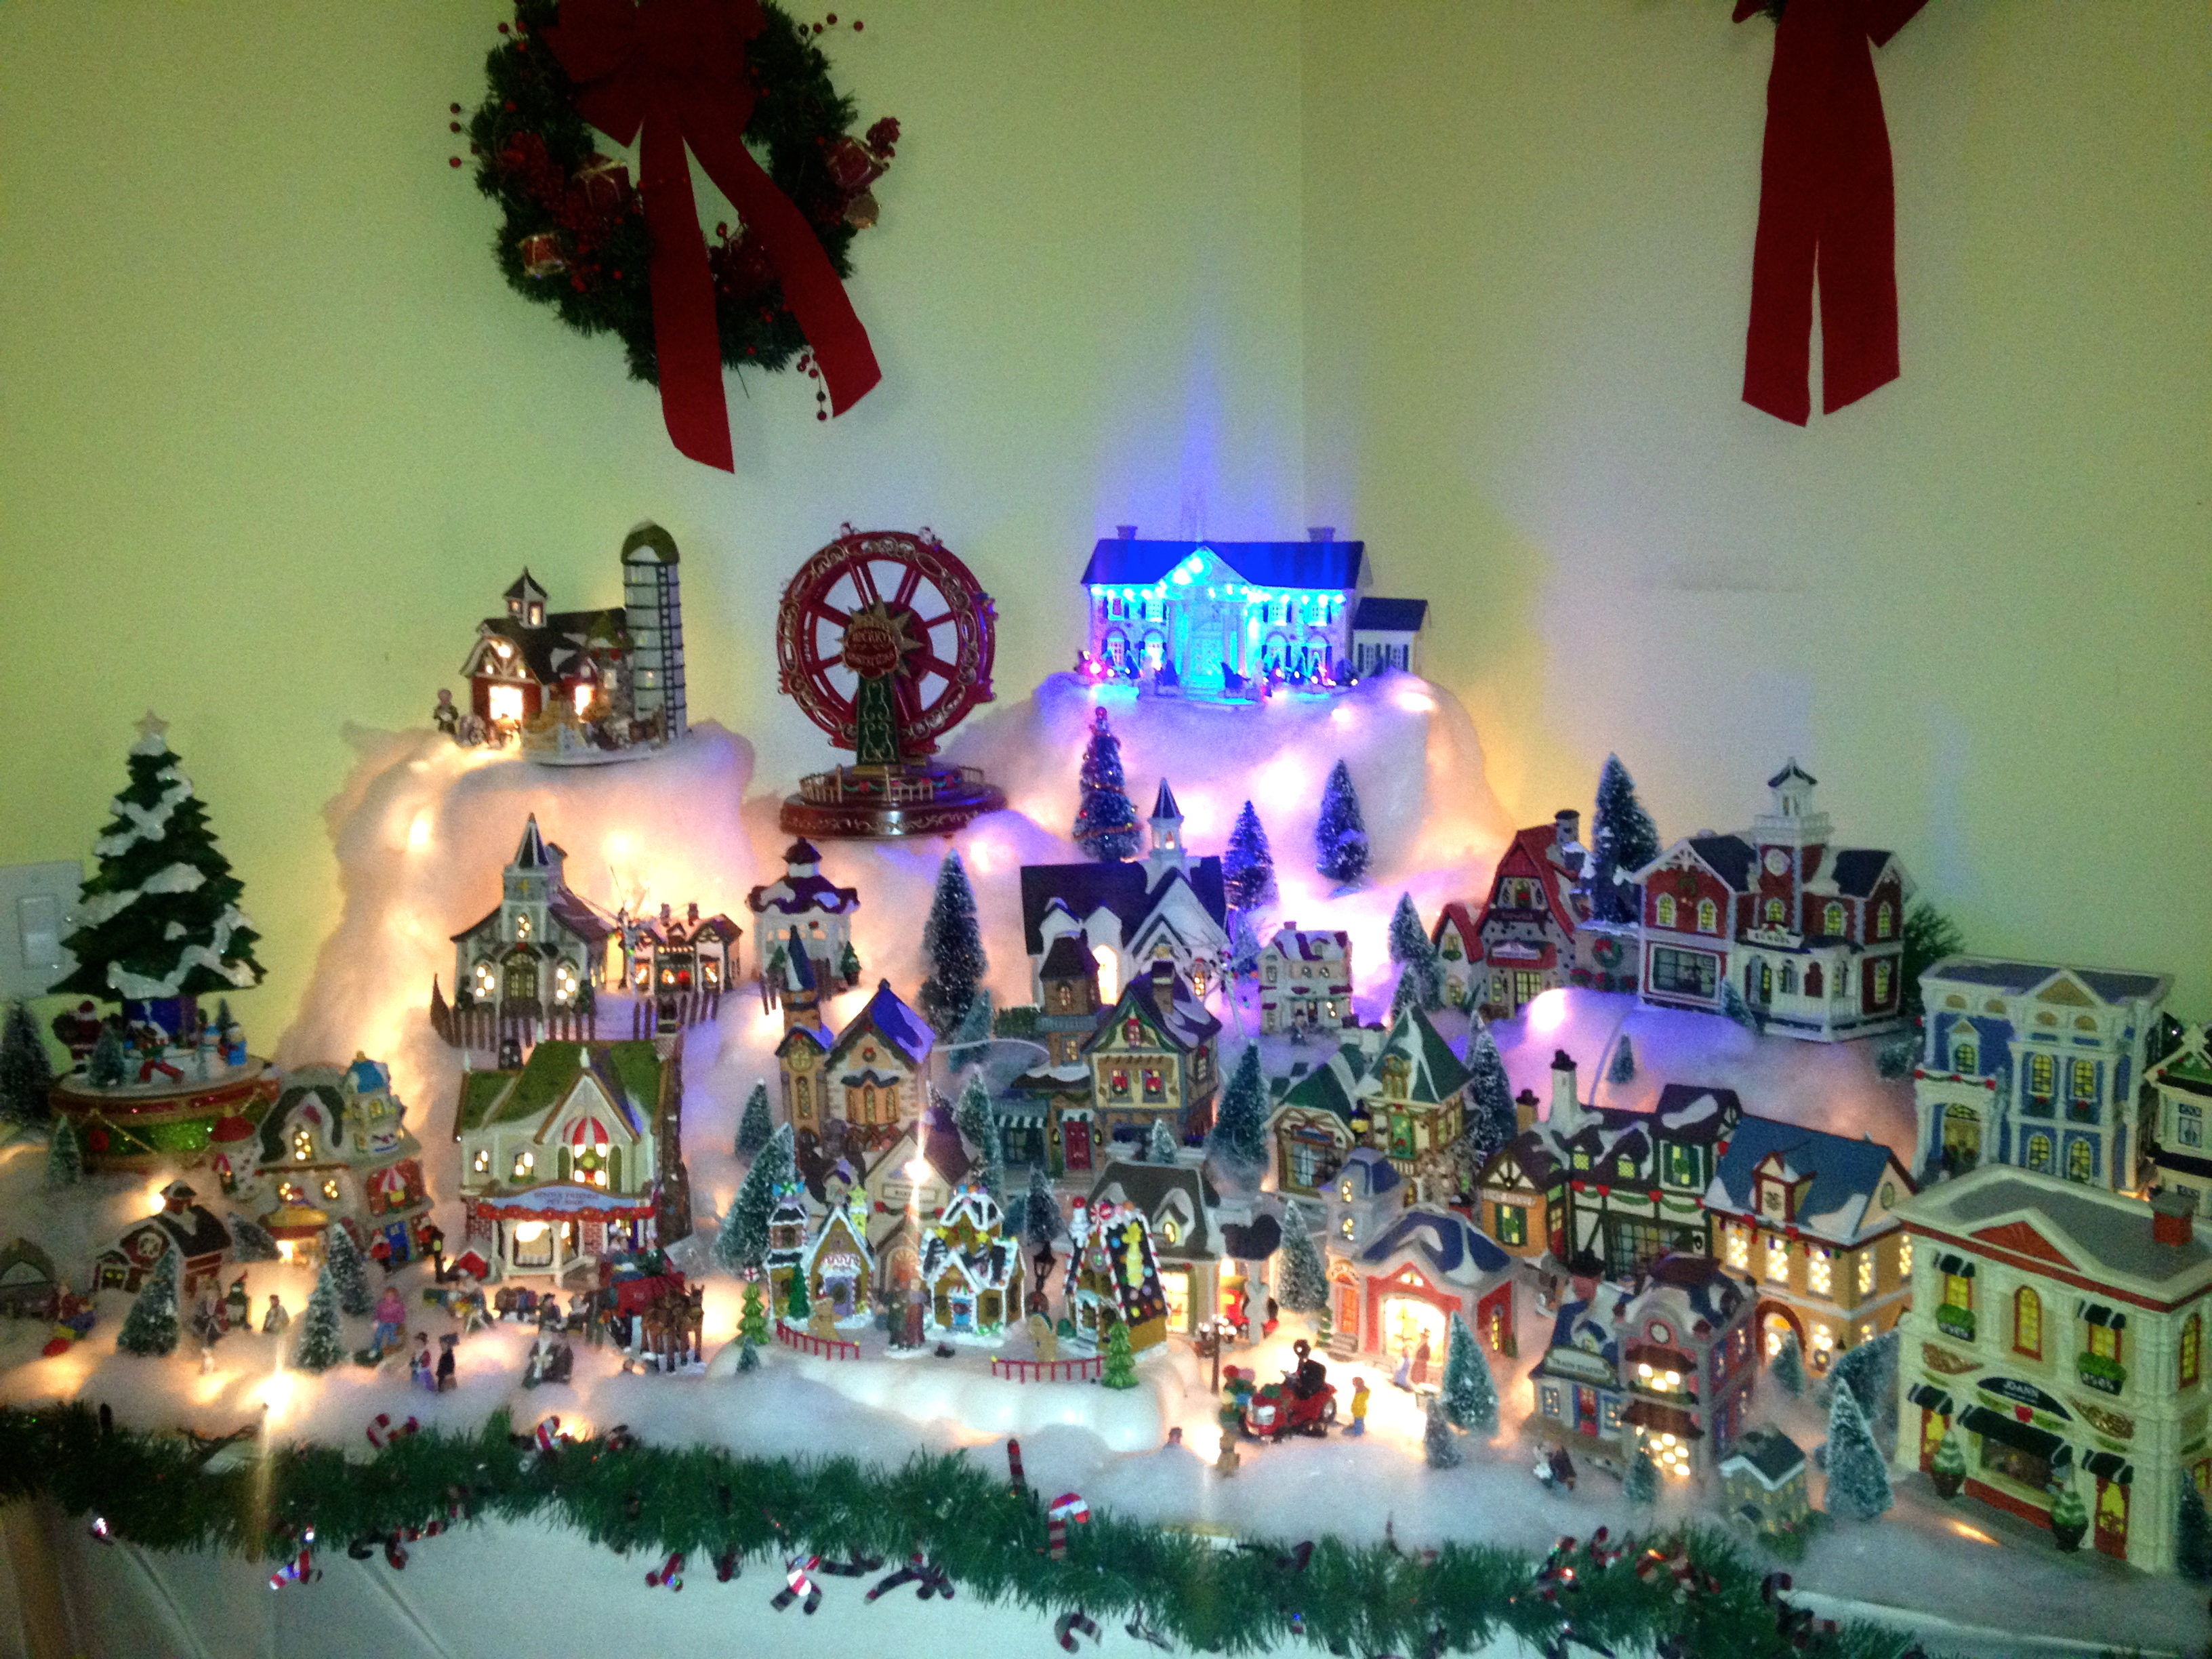 Christmas Village Home Decor Merry Christmas And Happy New Year 2018